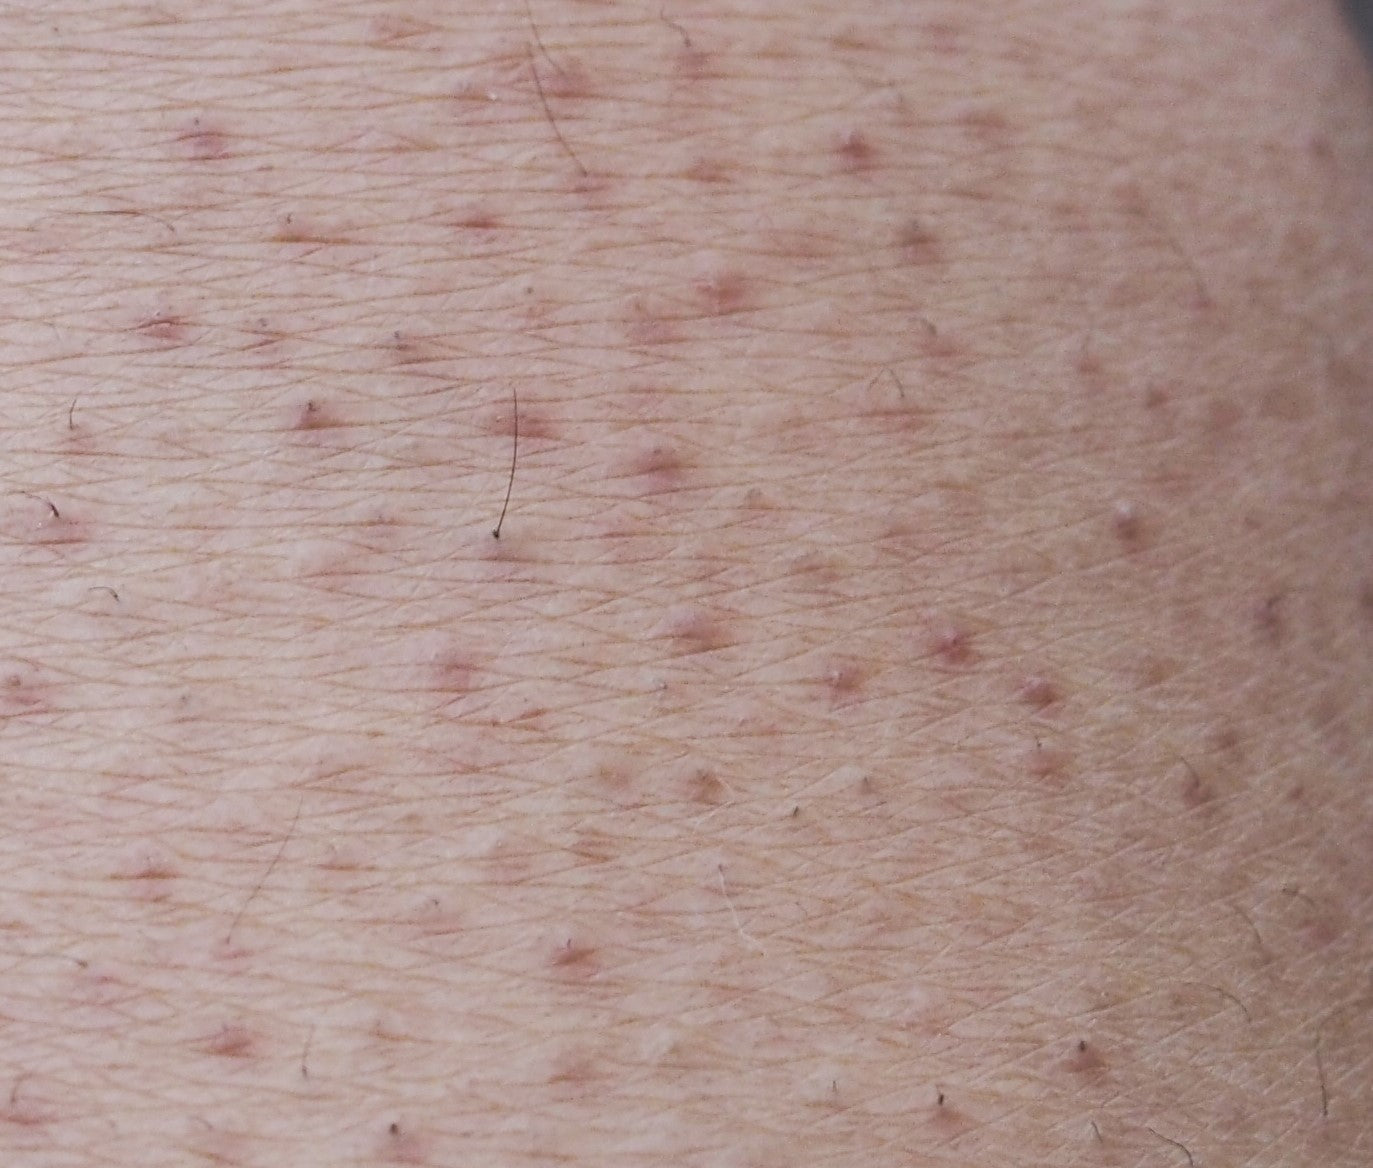 what is keratosis pilaris